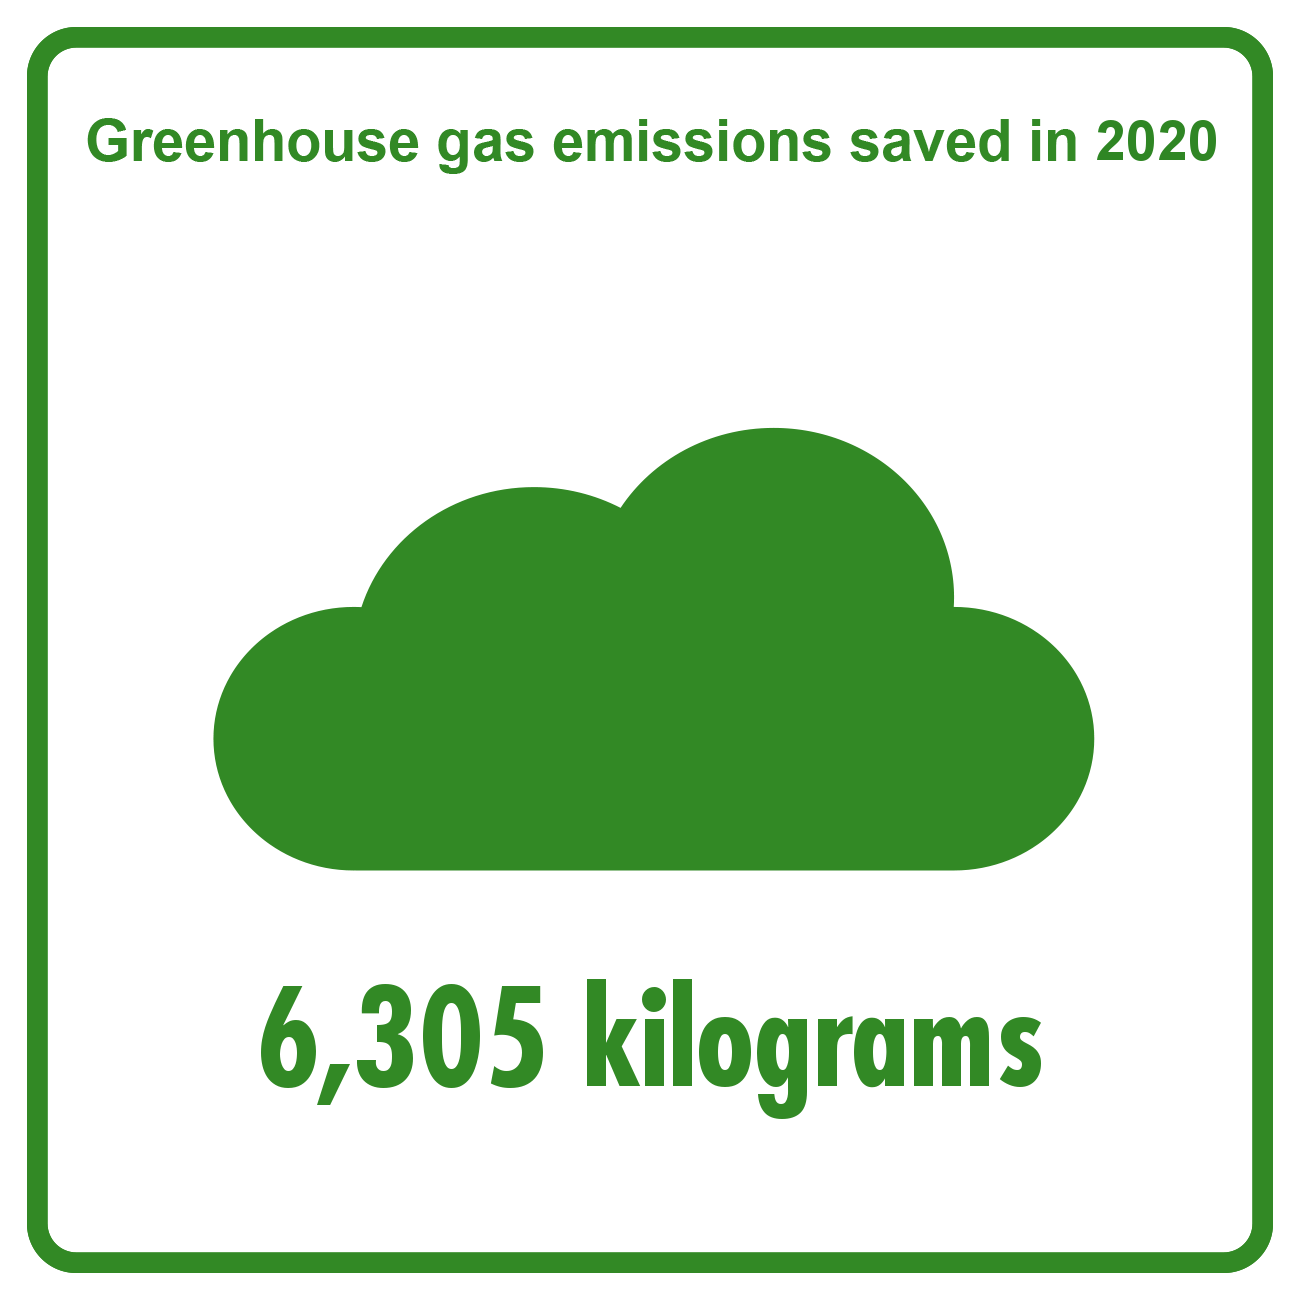 2020 - Saved greenhouse gas emissions